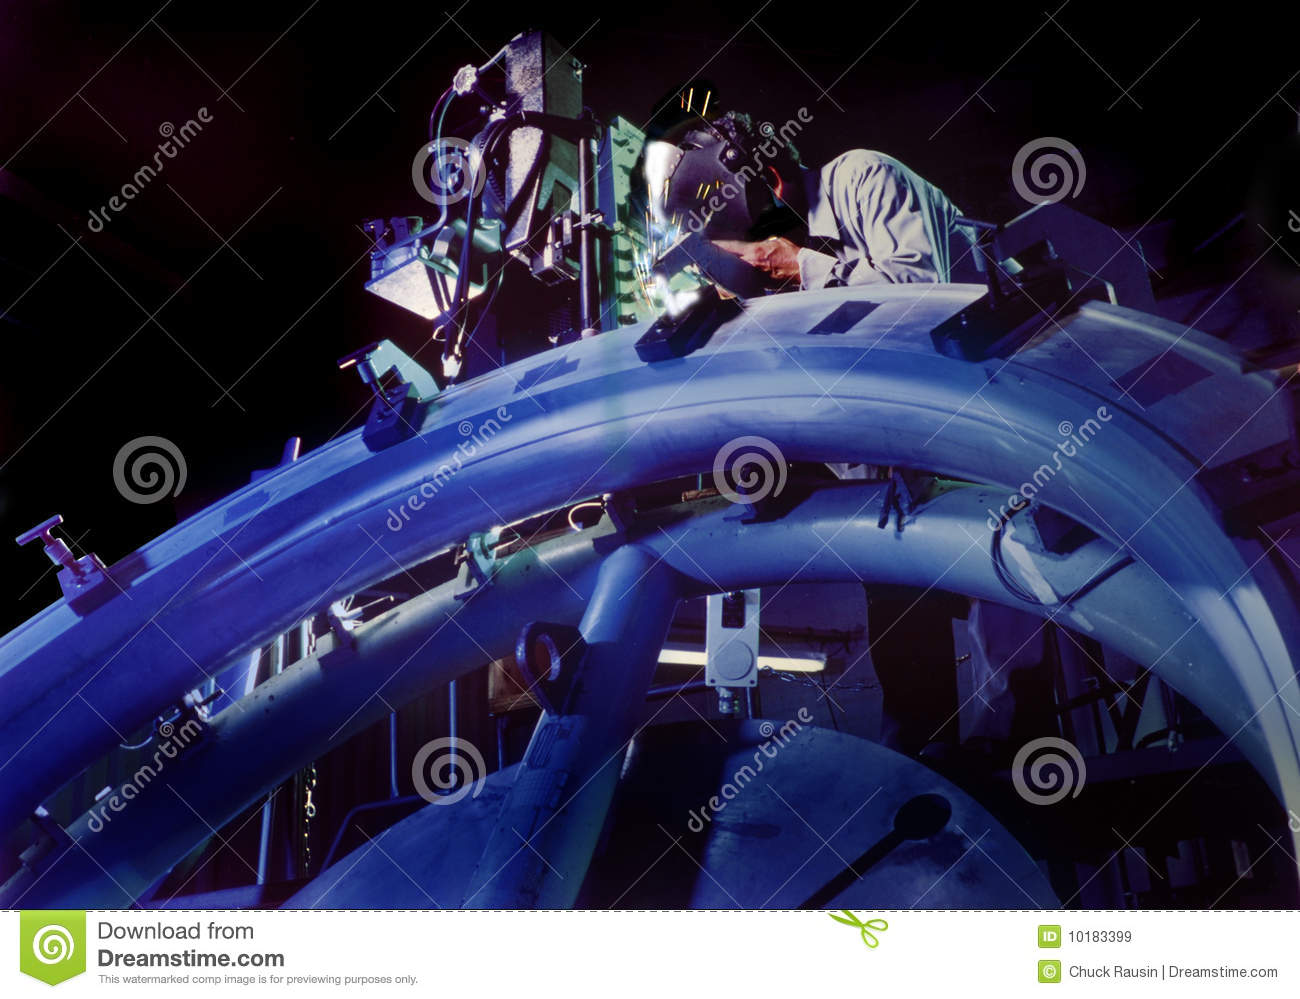 Aerospace Welder Royalty Free Stock Images - Image: 10183399